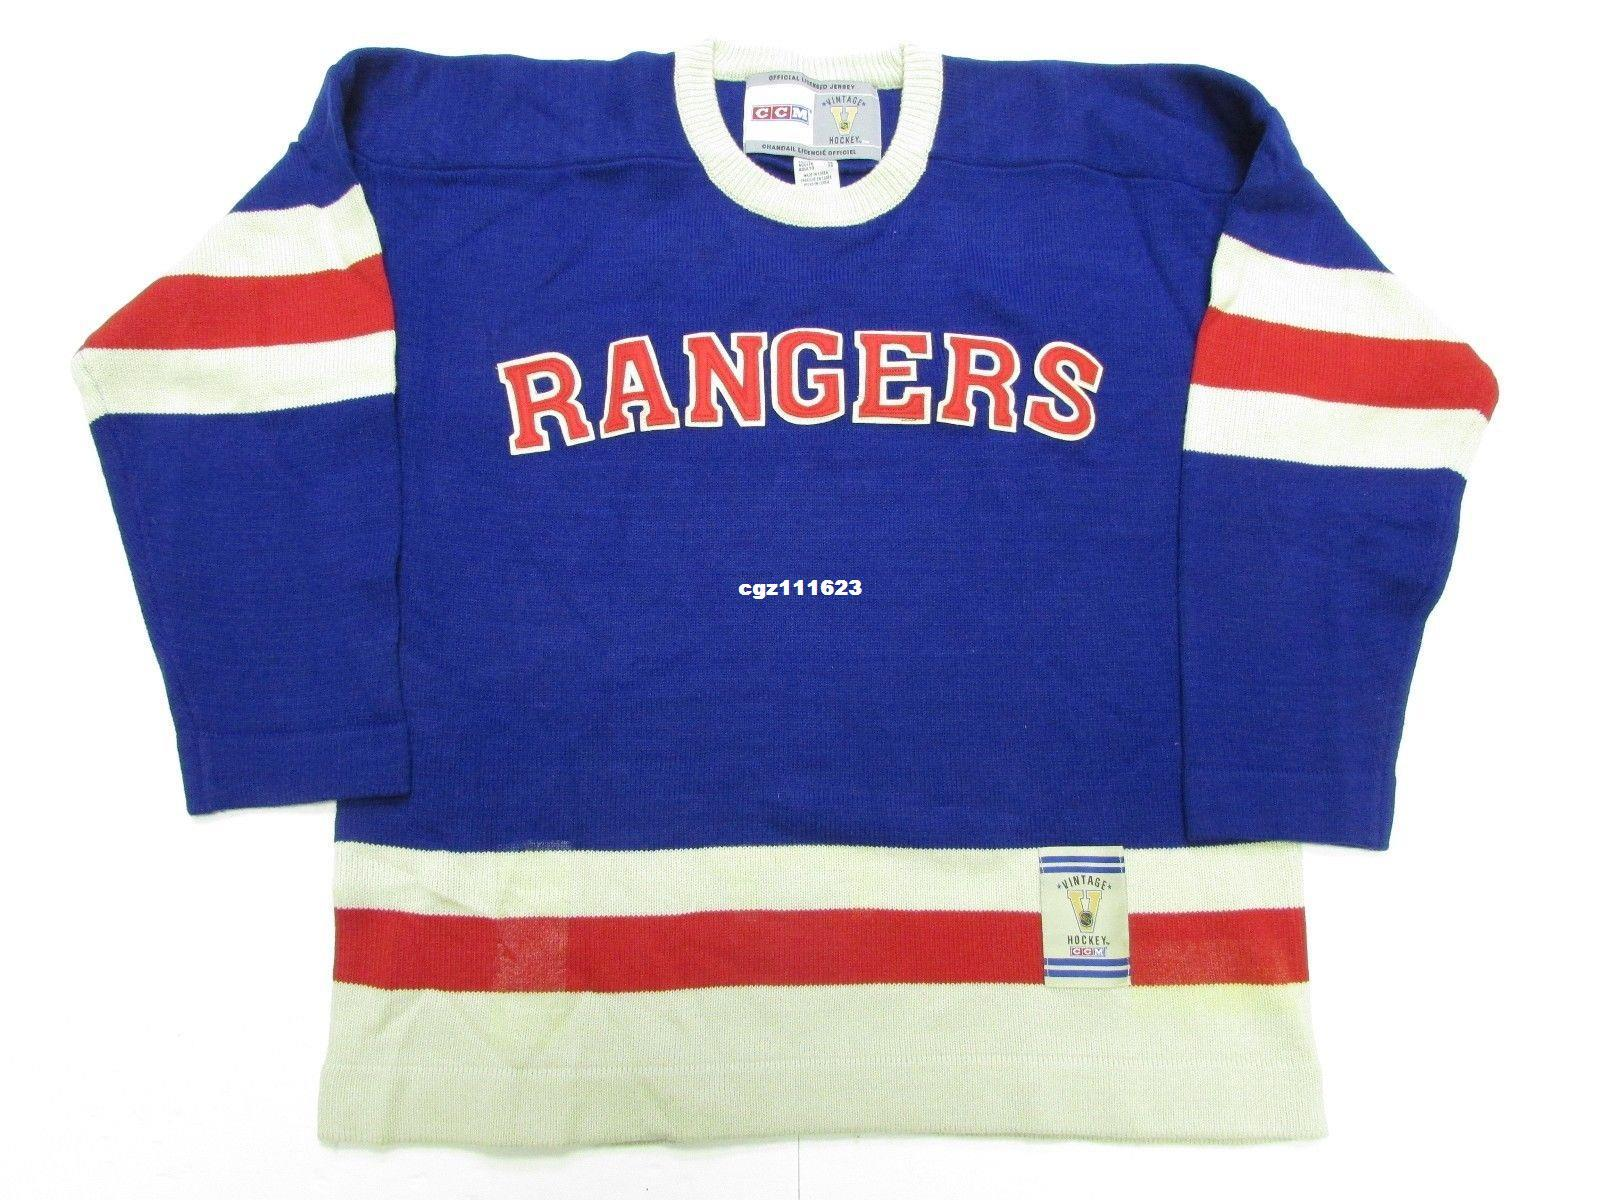 00640a9e7 spain product. home wayne gretzky new york rangers adidas authentic away  nhl vintage hockey jersey 1dfd7 a9ed3; top quality cheap hockey jerseys  oshie best ...